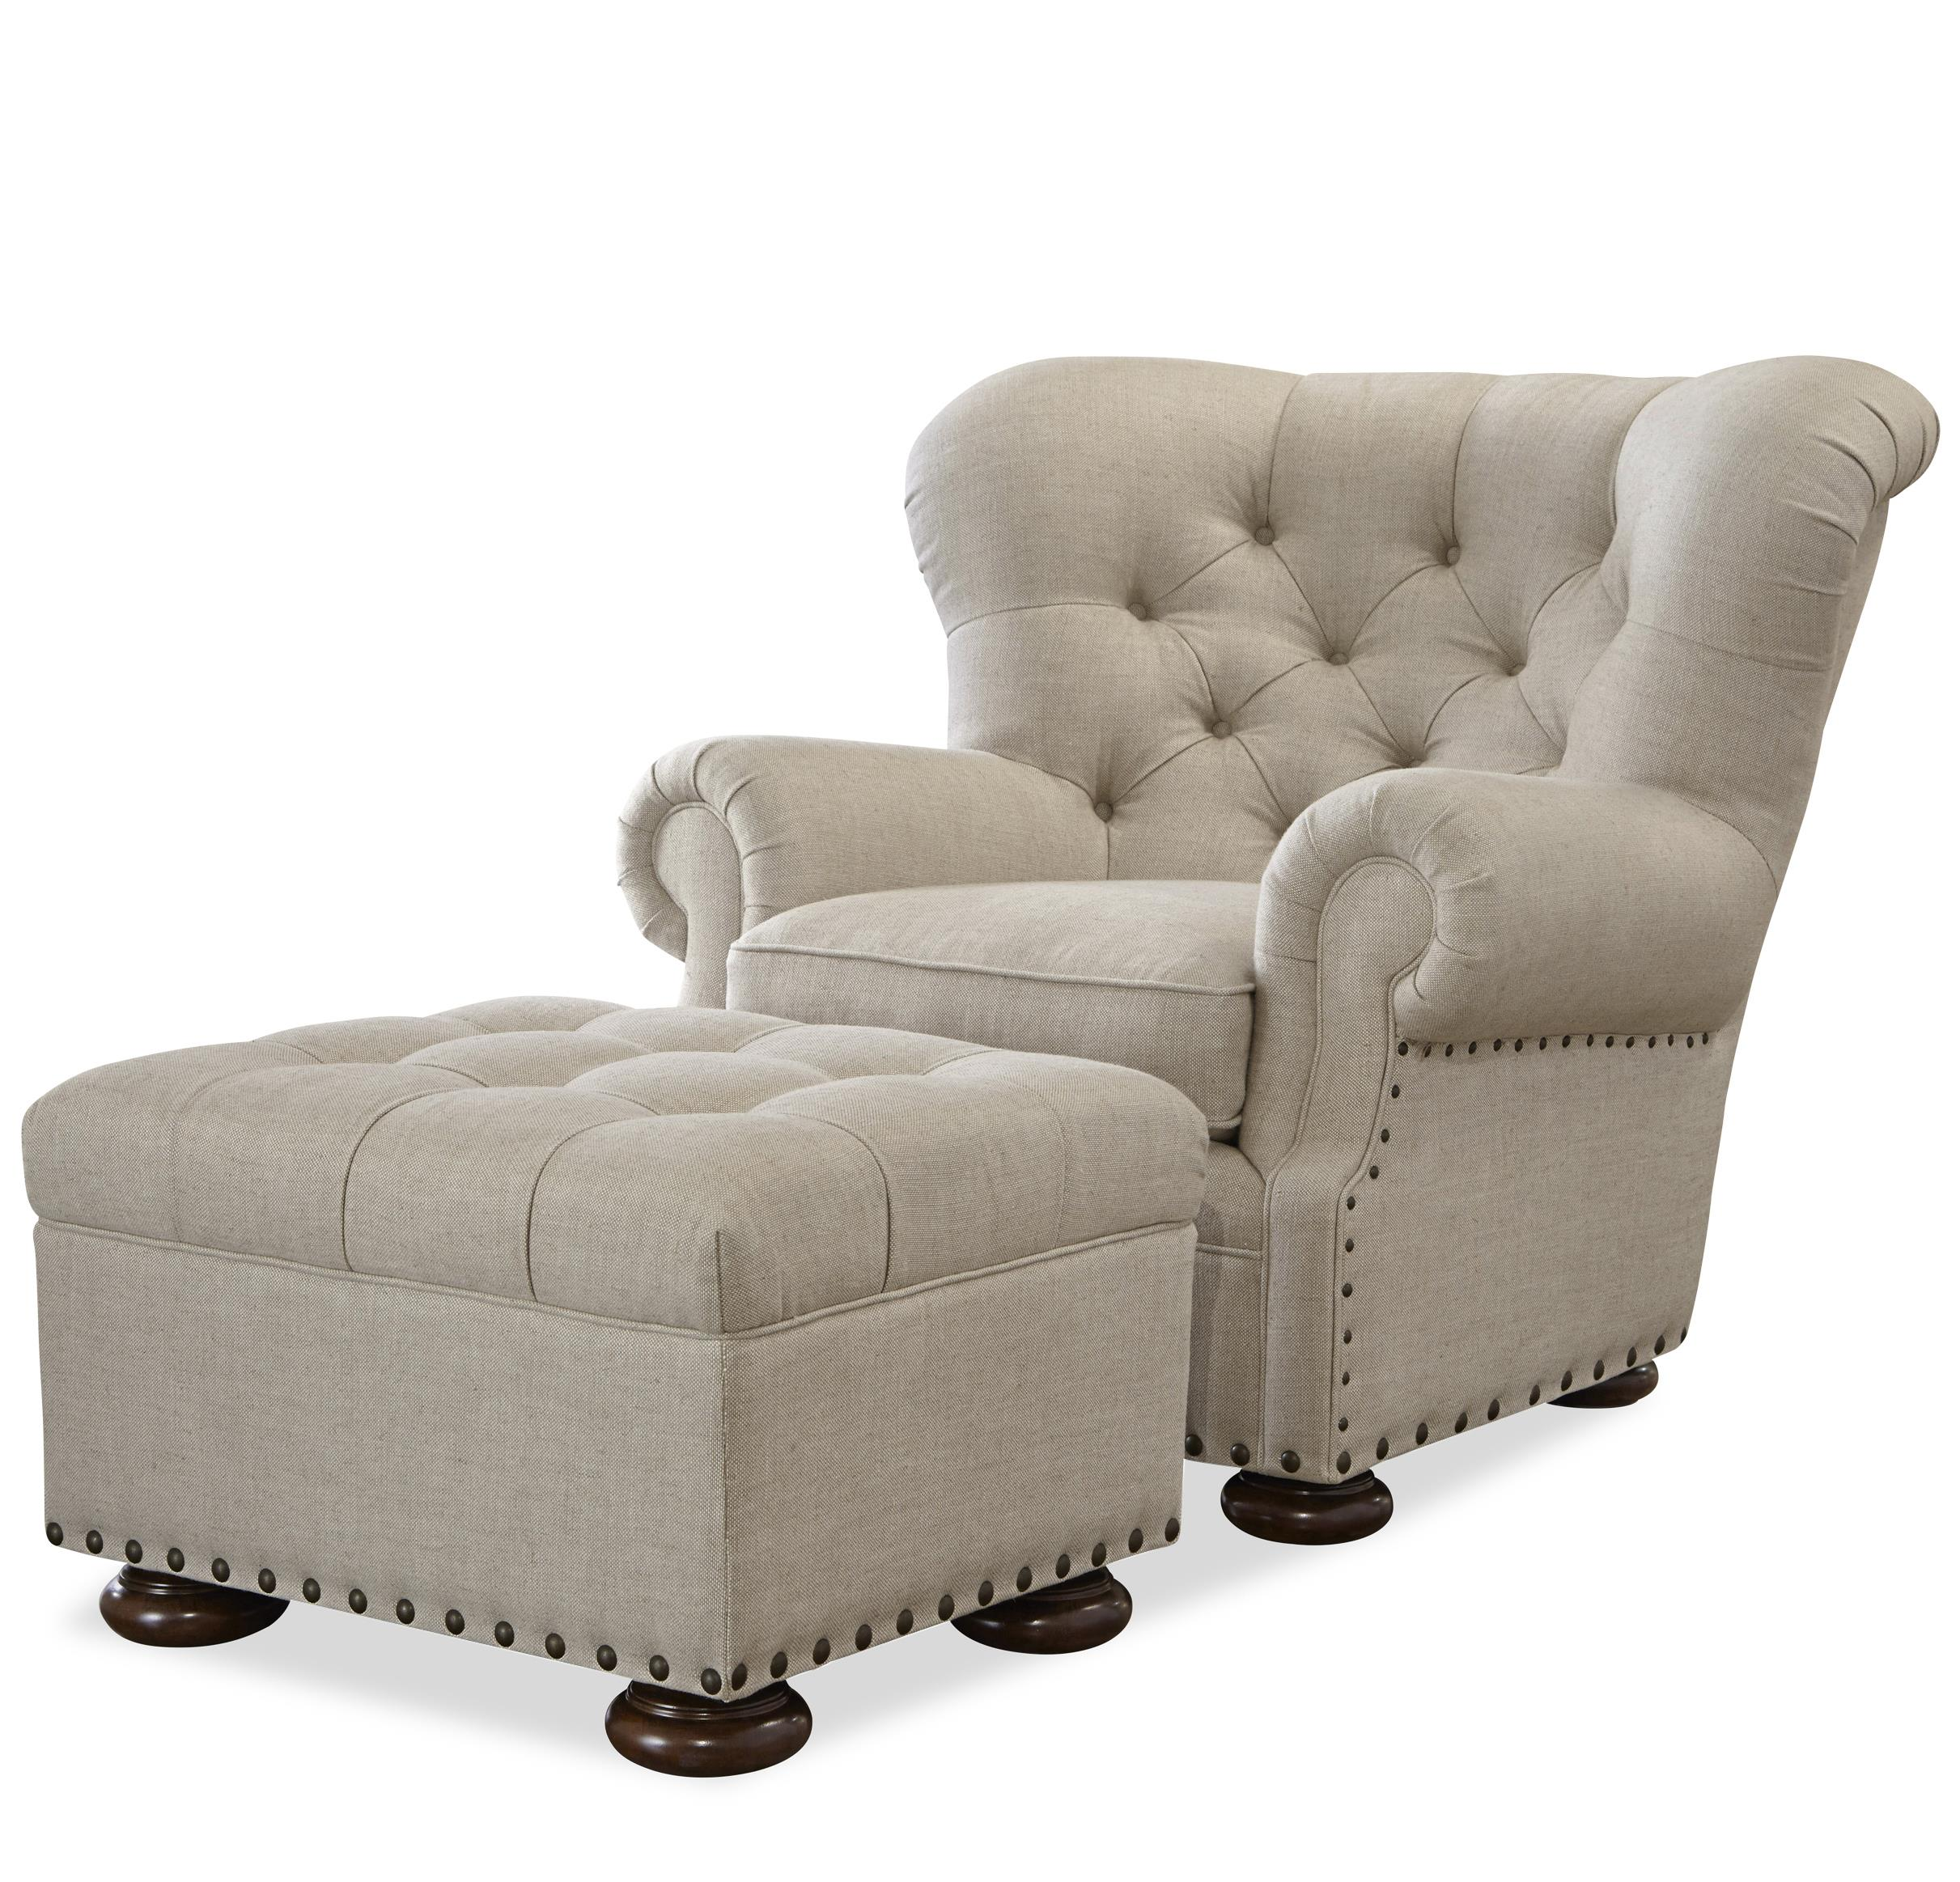 Chair And Ottoman Universal Maxwell Chair And Ottoman Set With Button